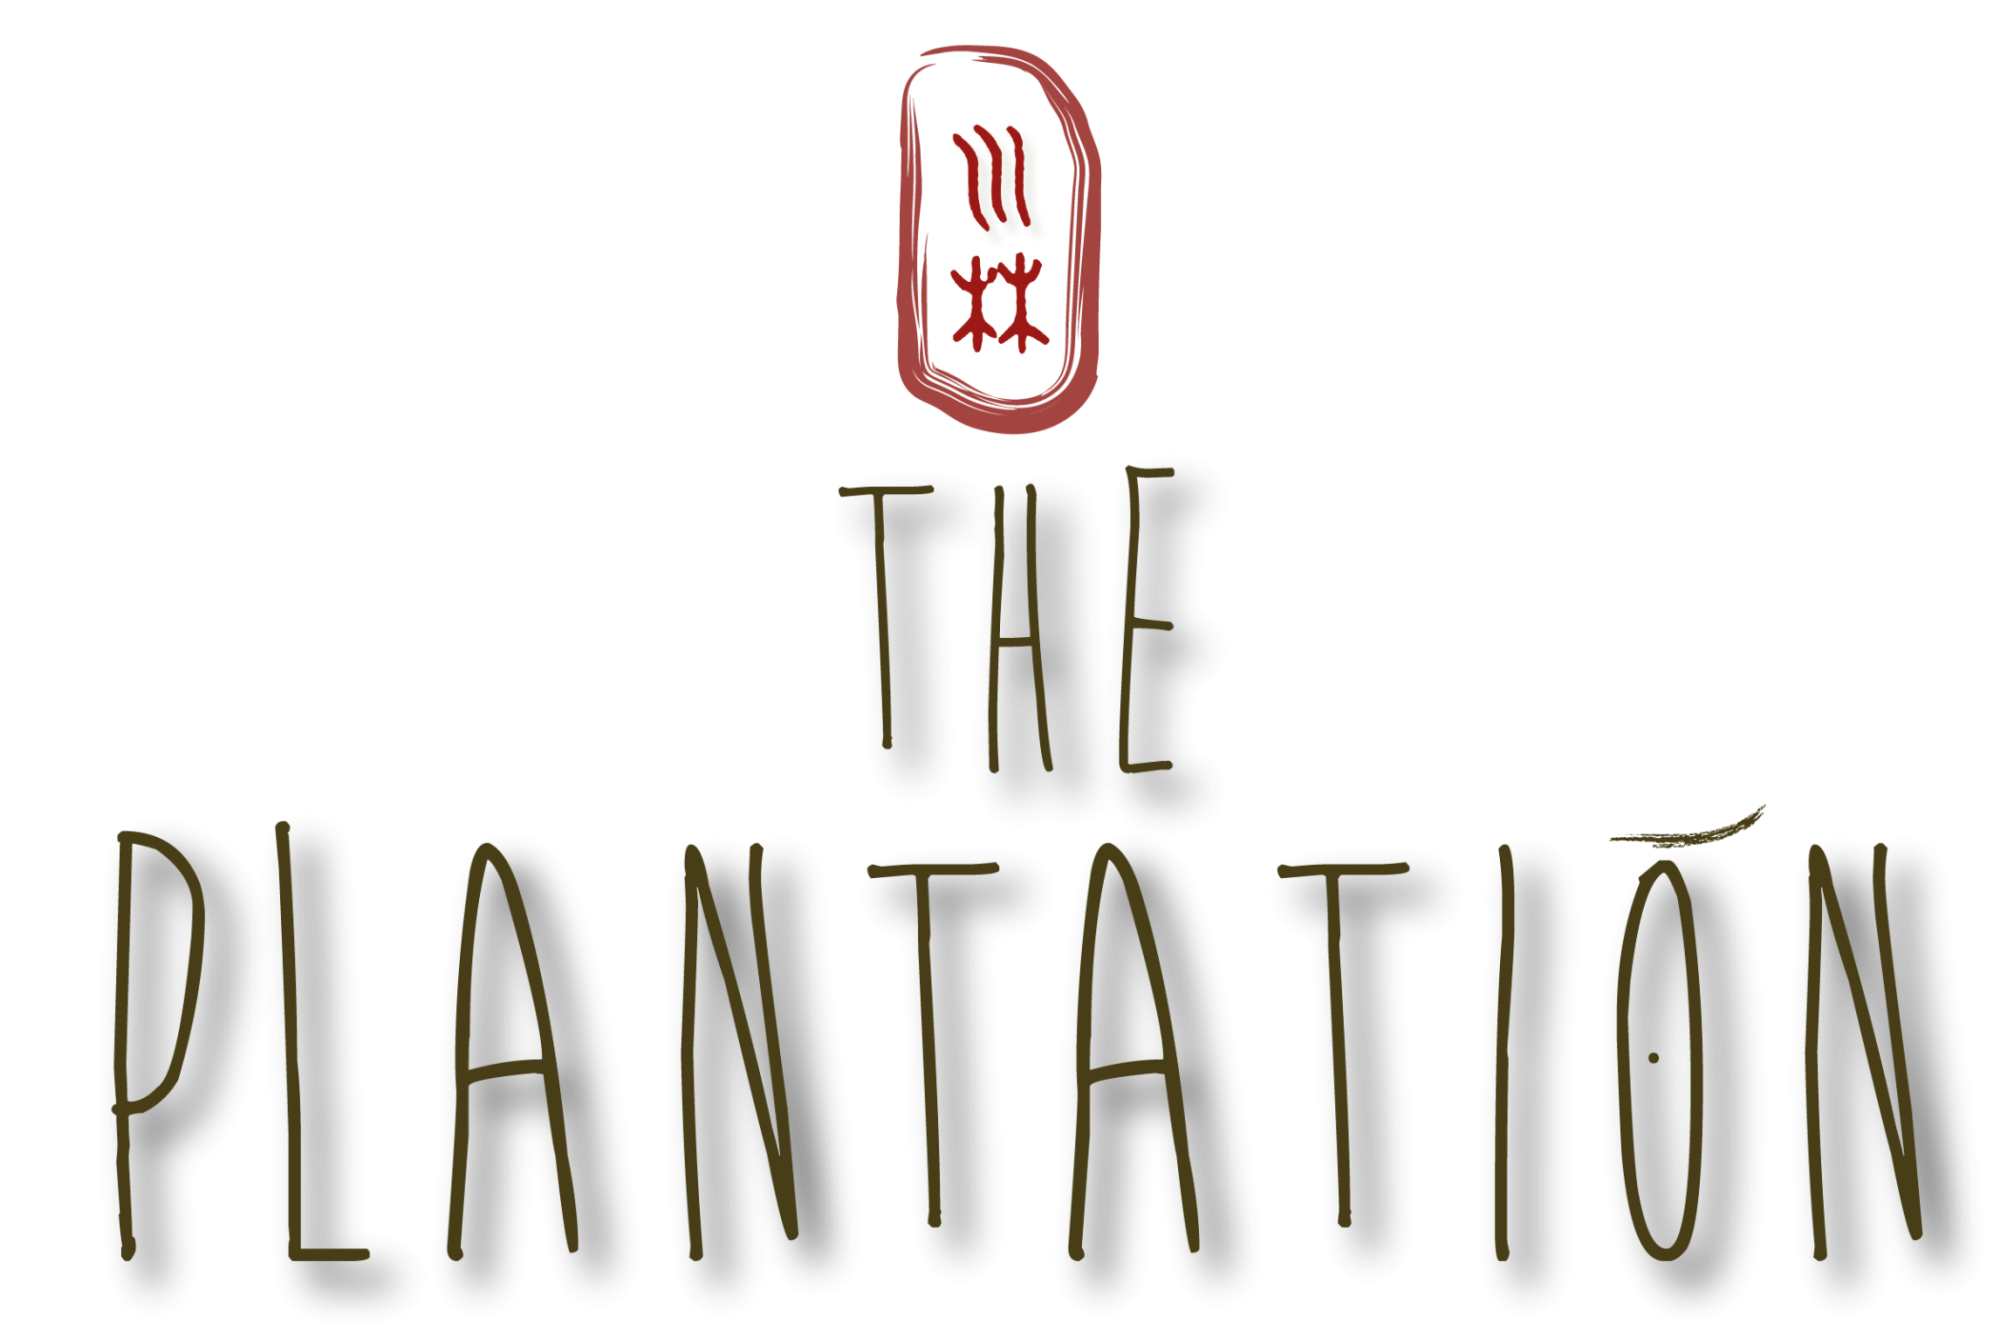 The Plantation Project